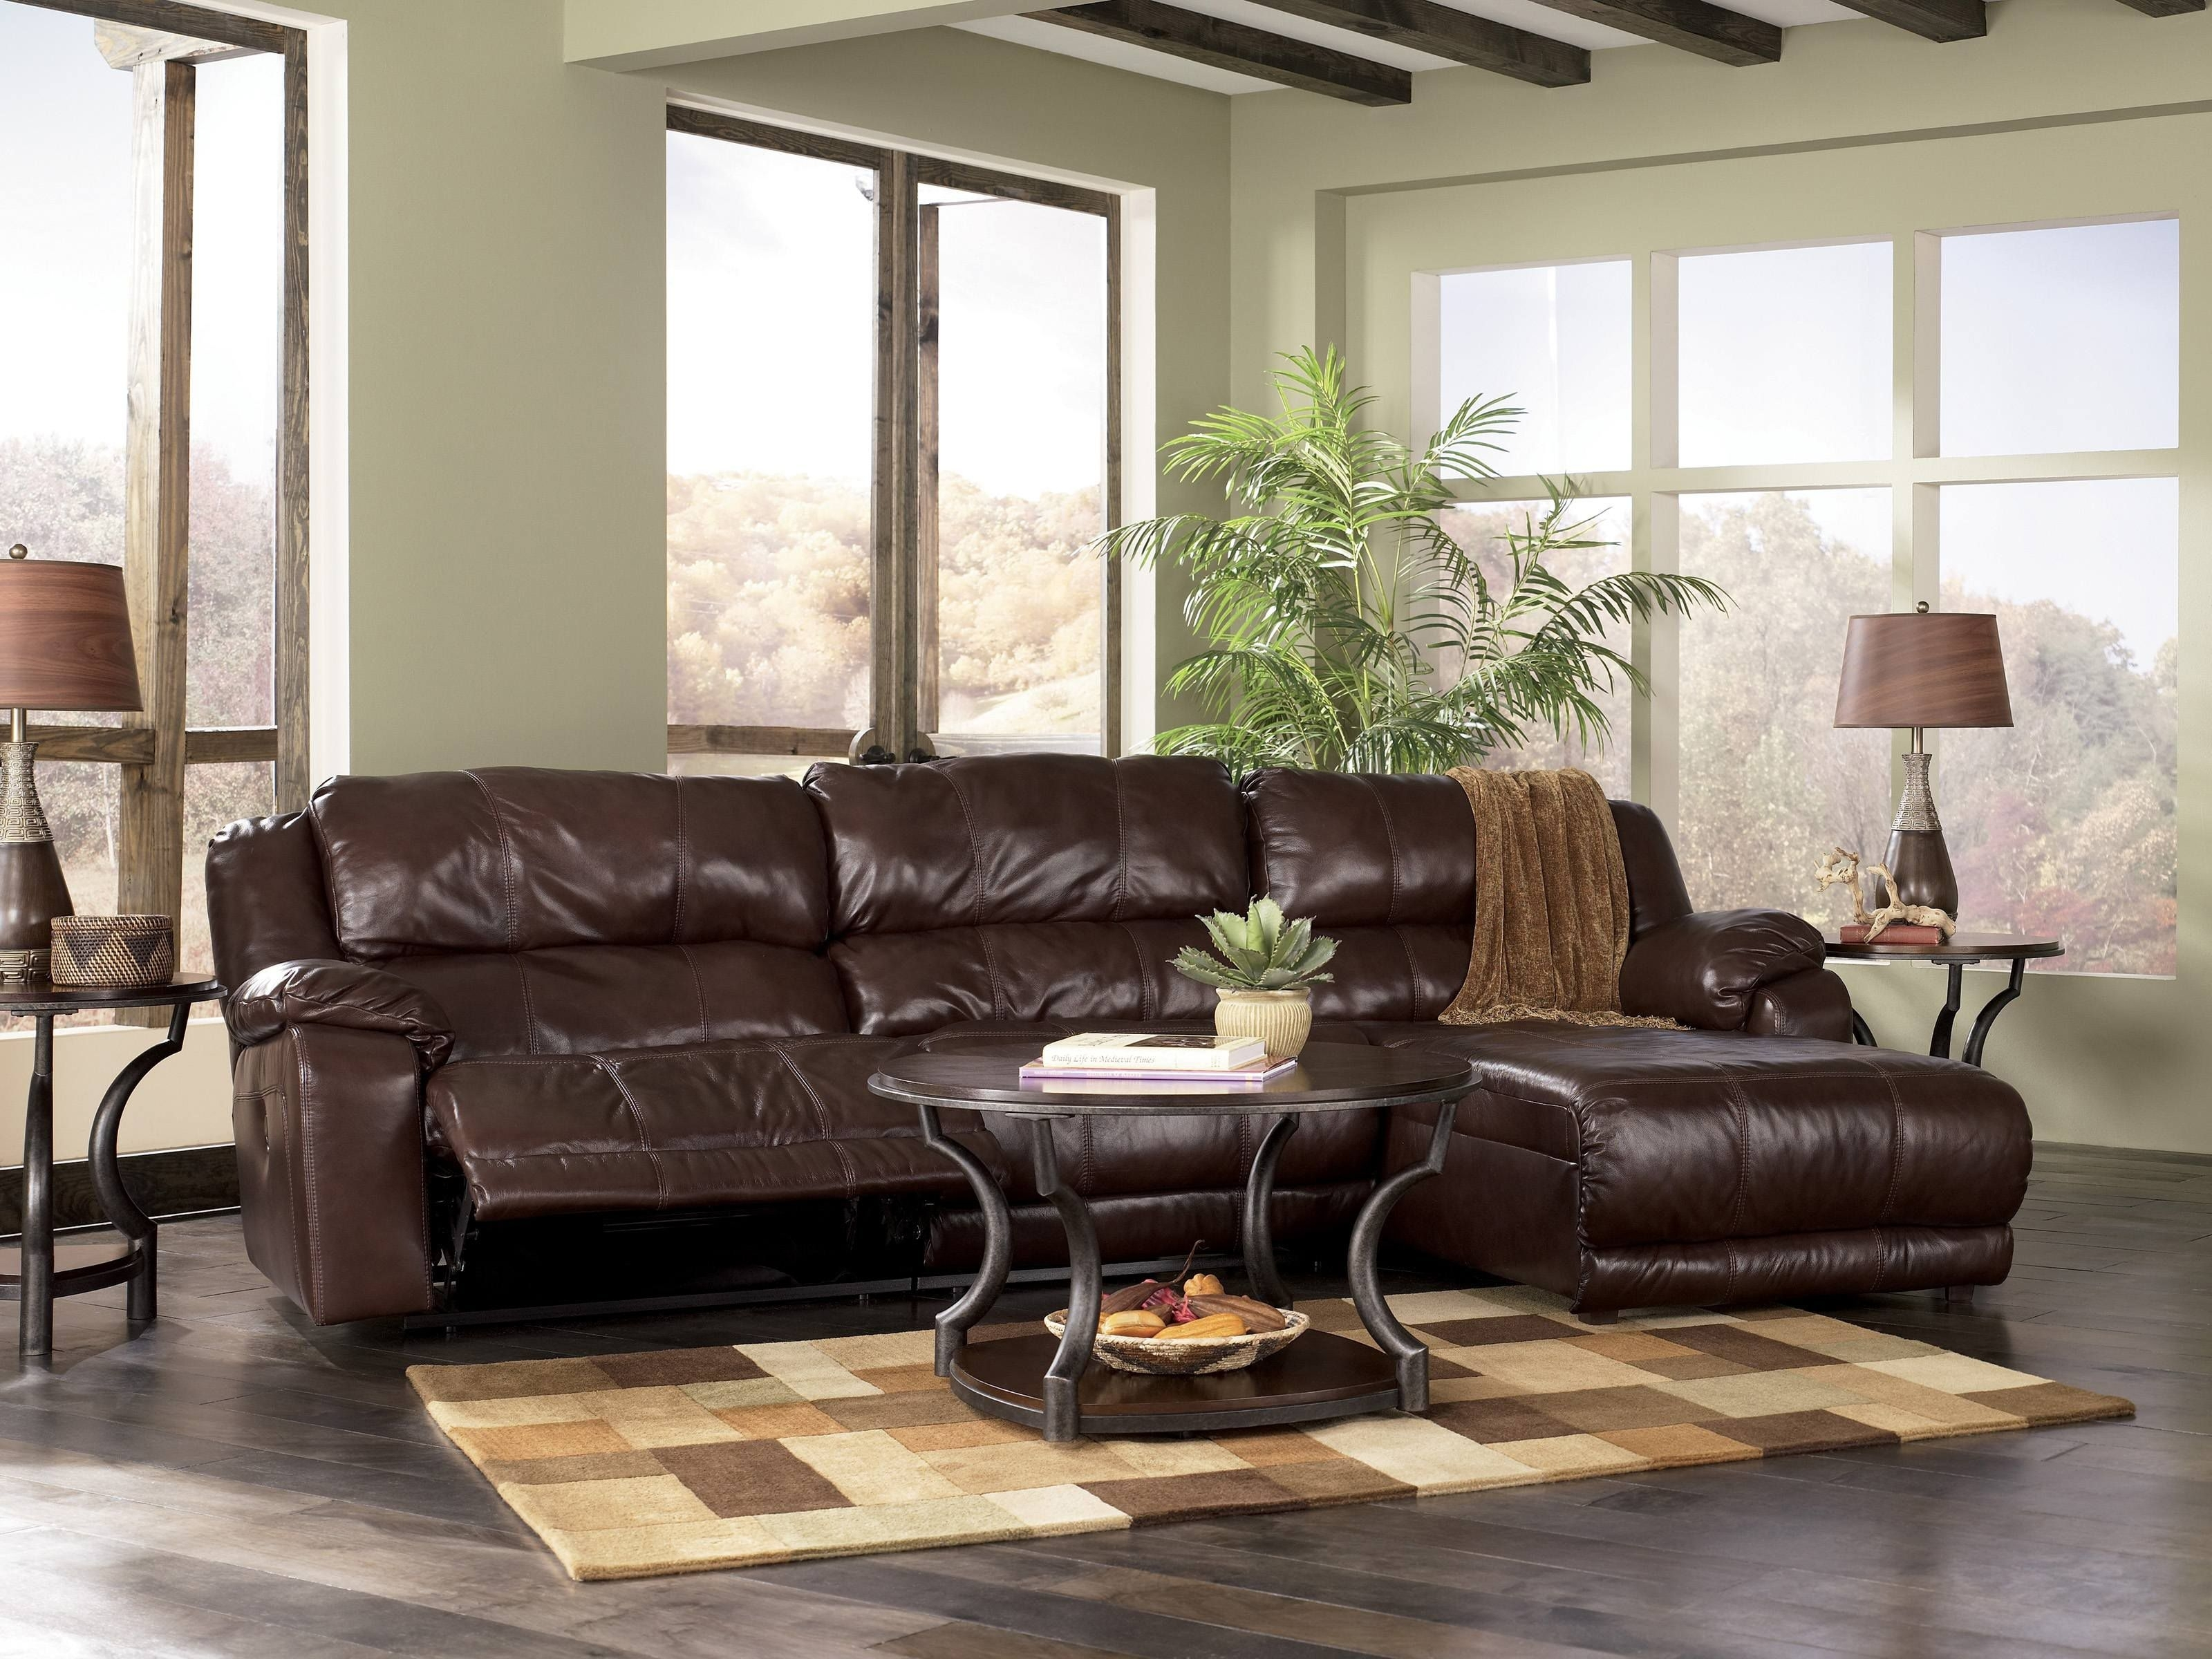 Sectional Sofas With Recliners | Johnson Leather Sofa With Recliner Regarding Johnson City Tn Sectional Sofas (Image 8 of 10)